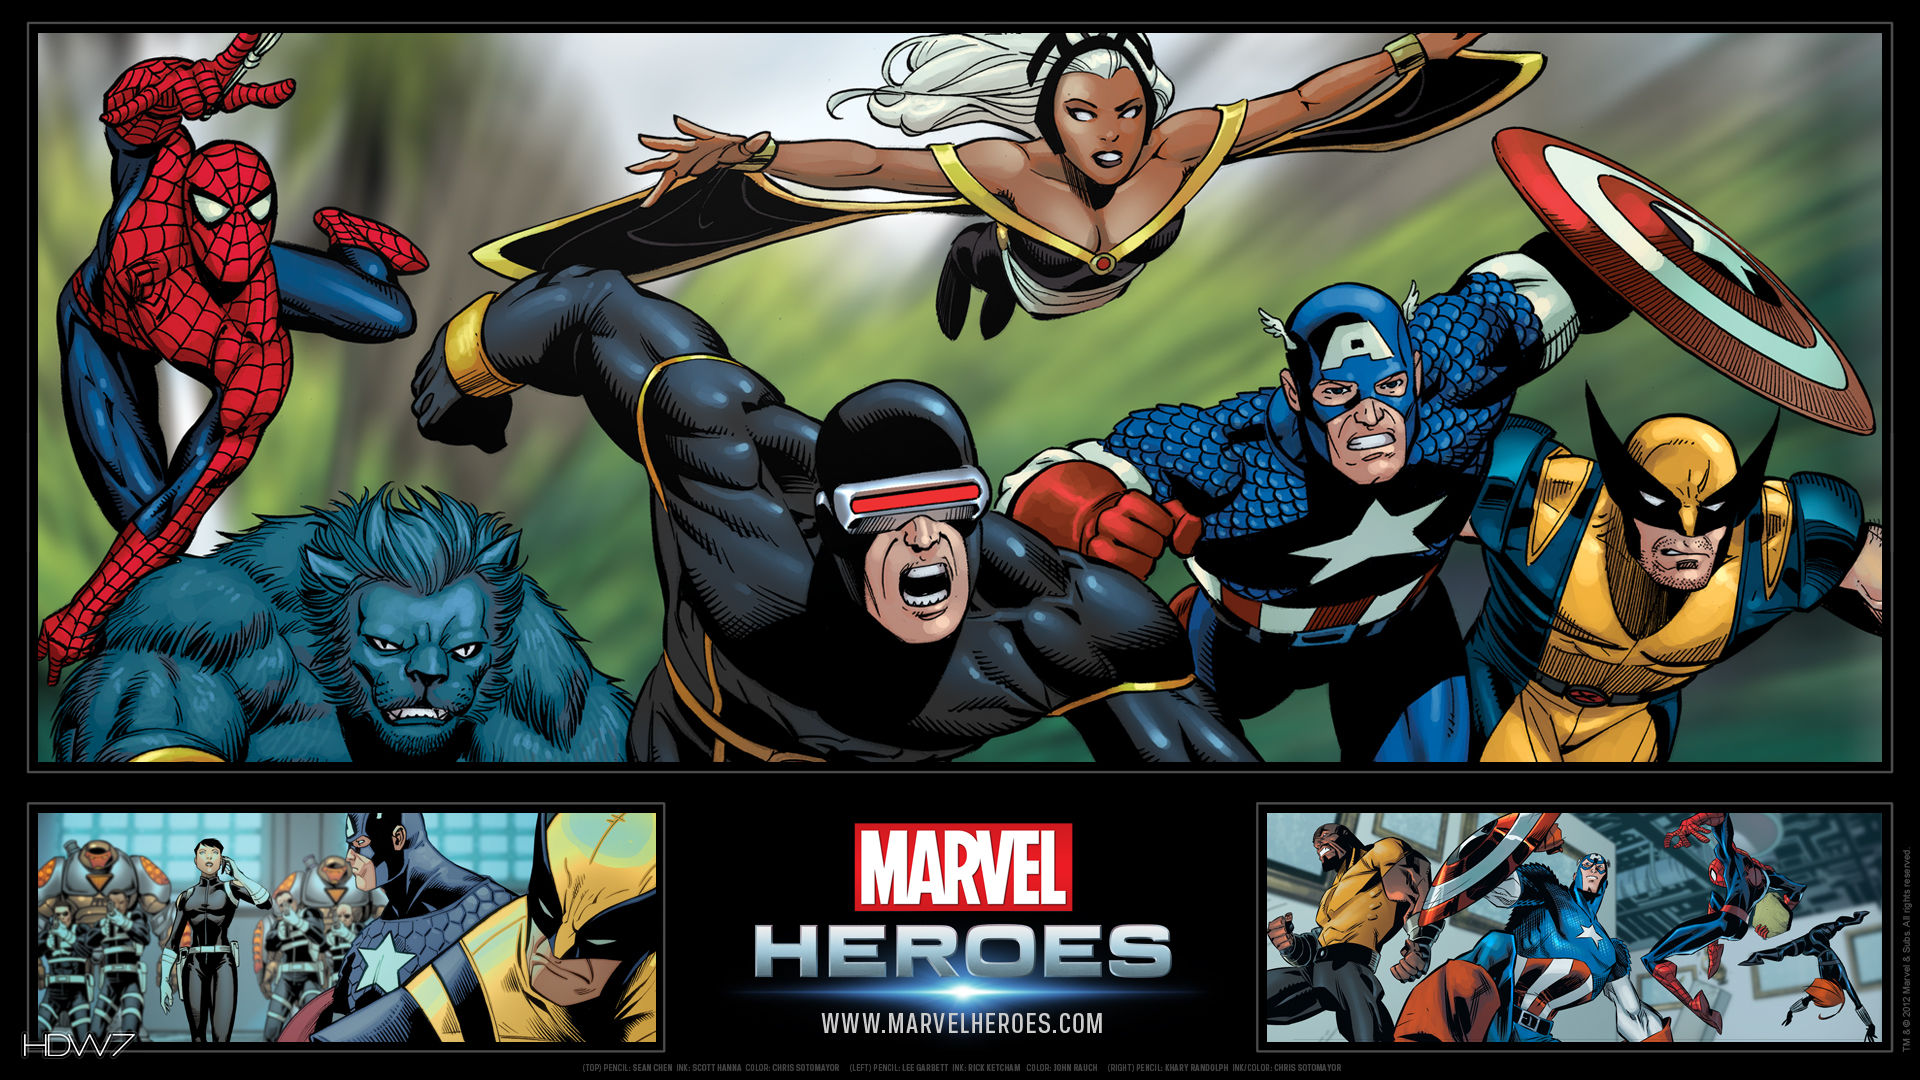 Marvel Heroes Marvel Superheroes Widescreen Hd Wallpaper Hd